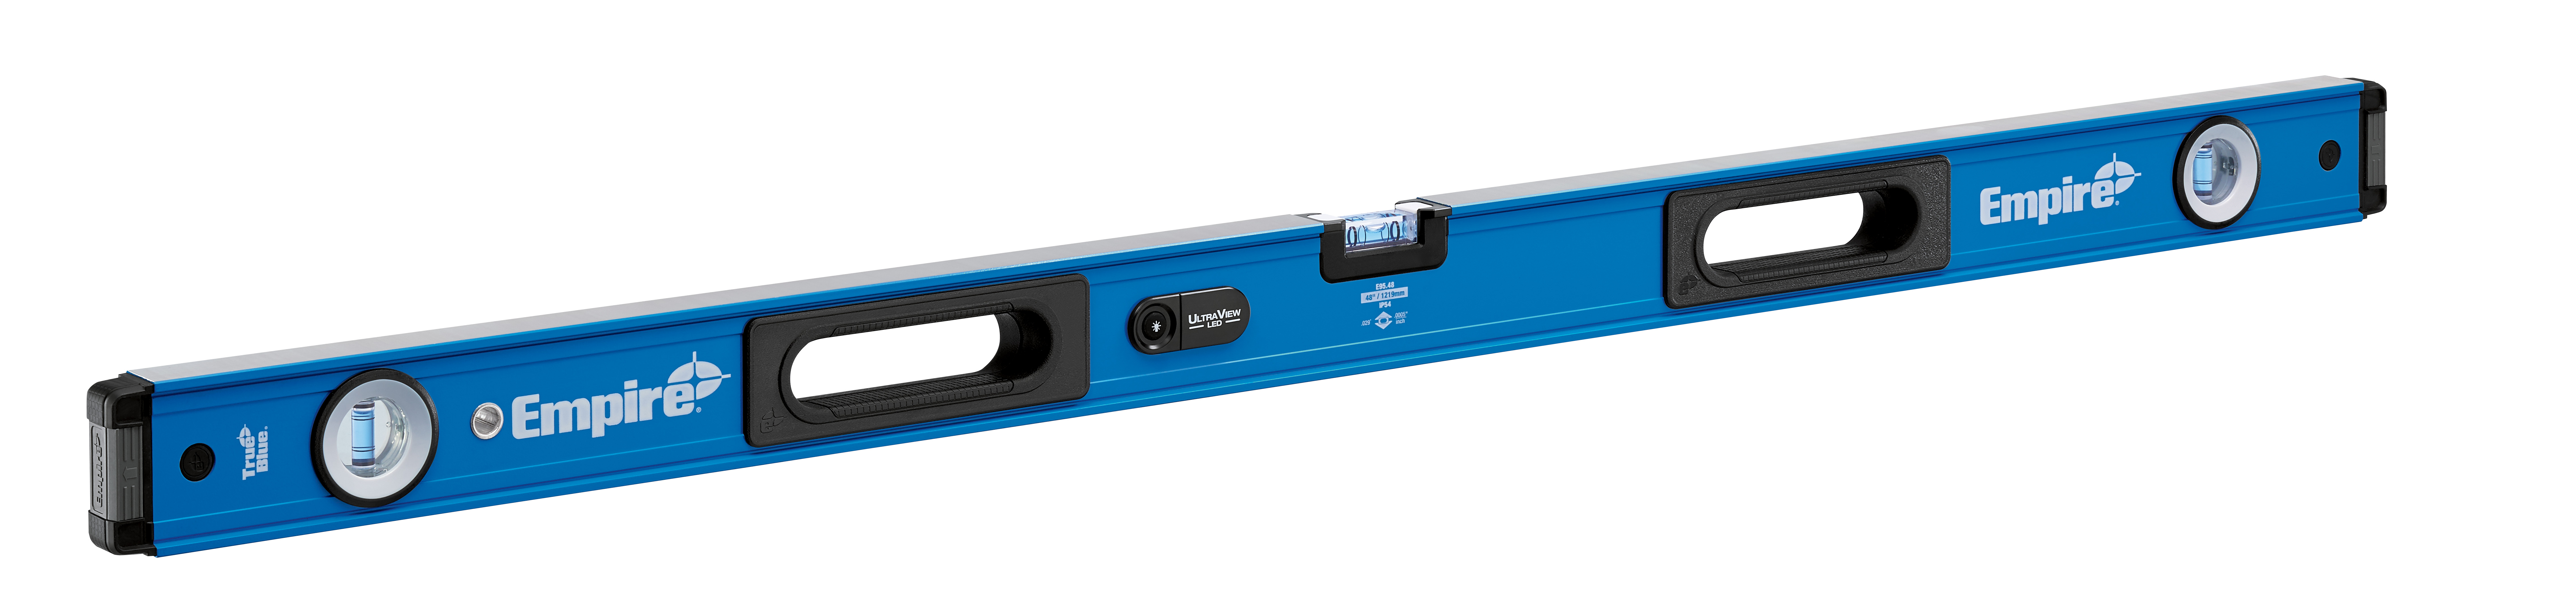 Milwaukee® Empire® TRUE BLUE® ULTRA VIEW® E95.48 E95 LED Box Level, 48 in L, 3 Vials, Aluminum, (1) Level, (2) Plumb Vial Position, 0.0005 in/in Accuracy